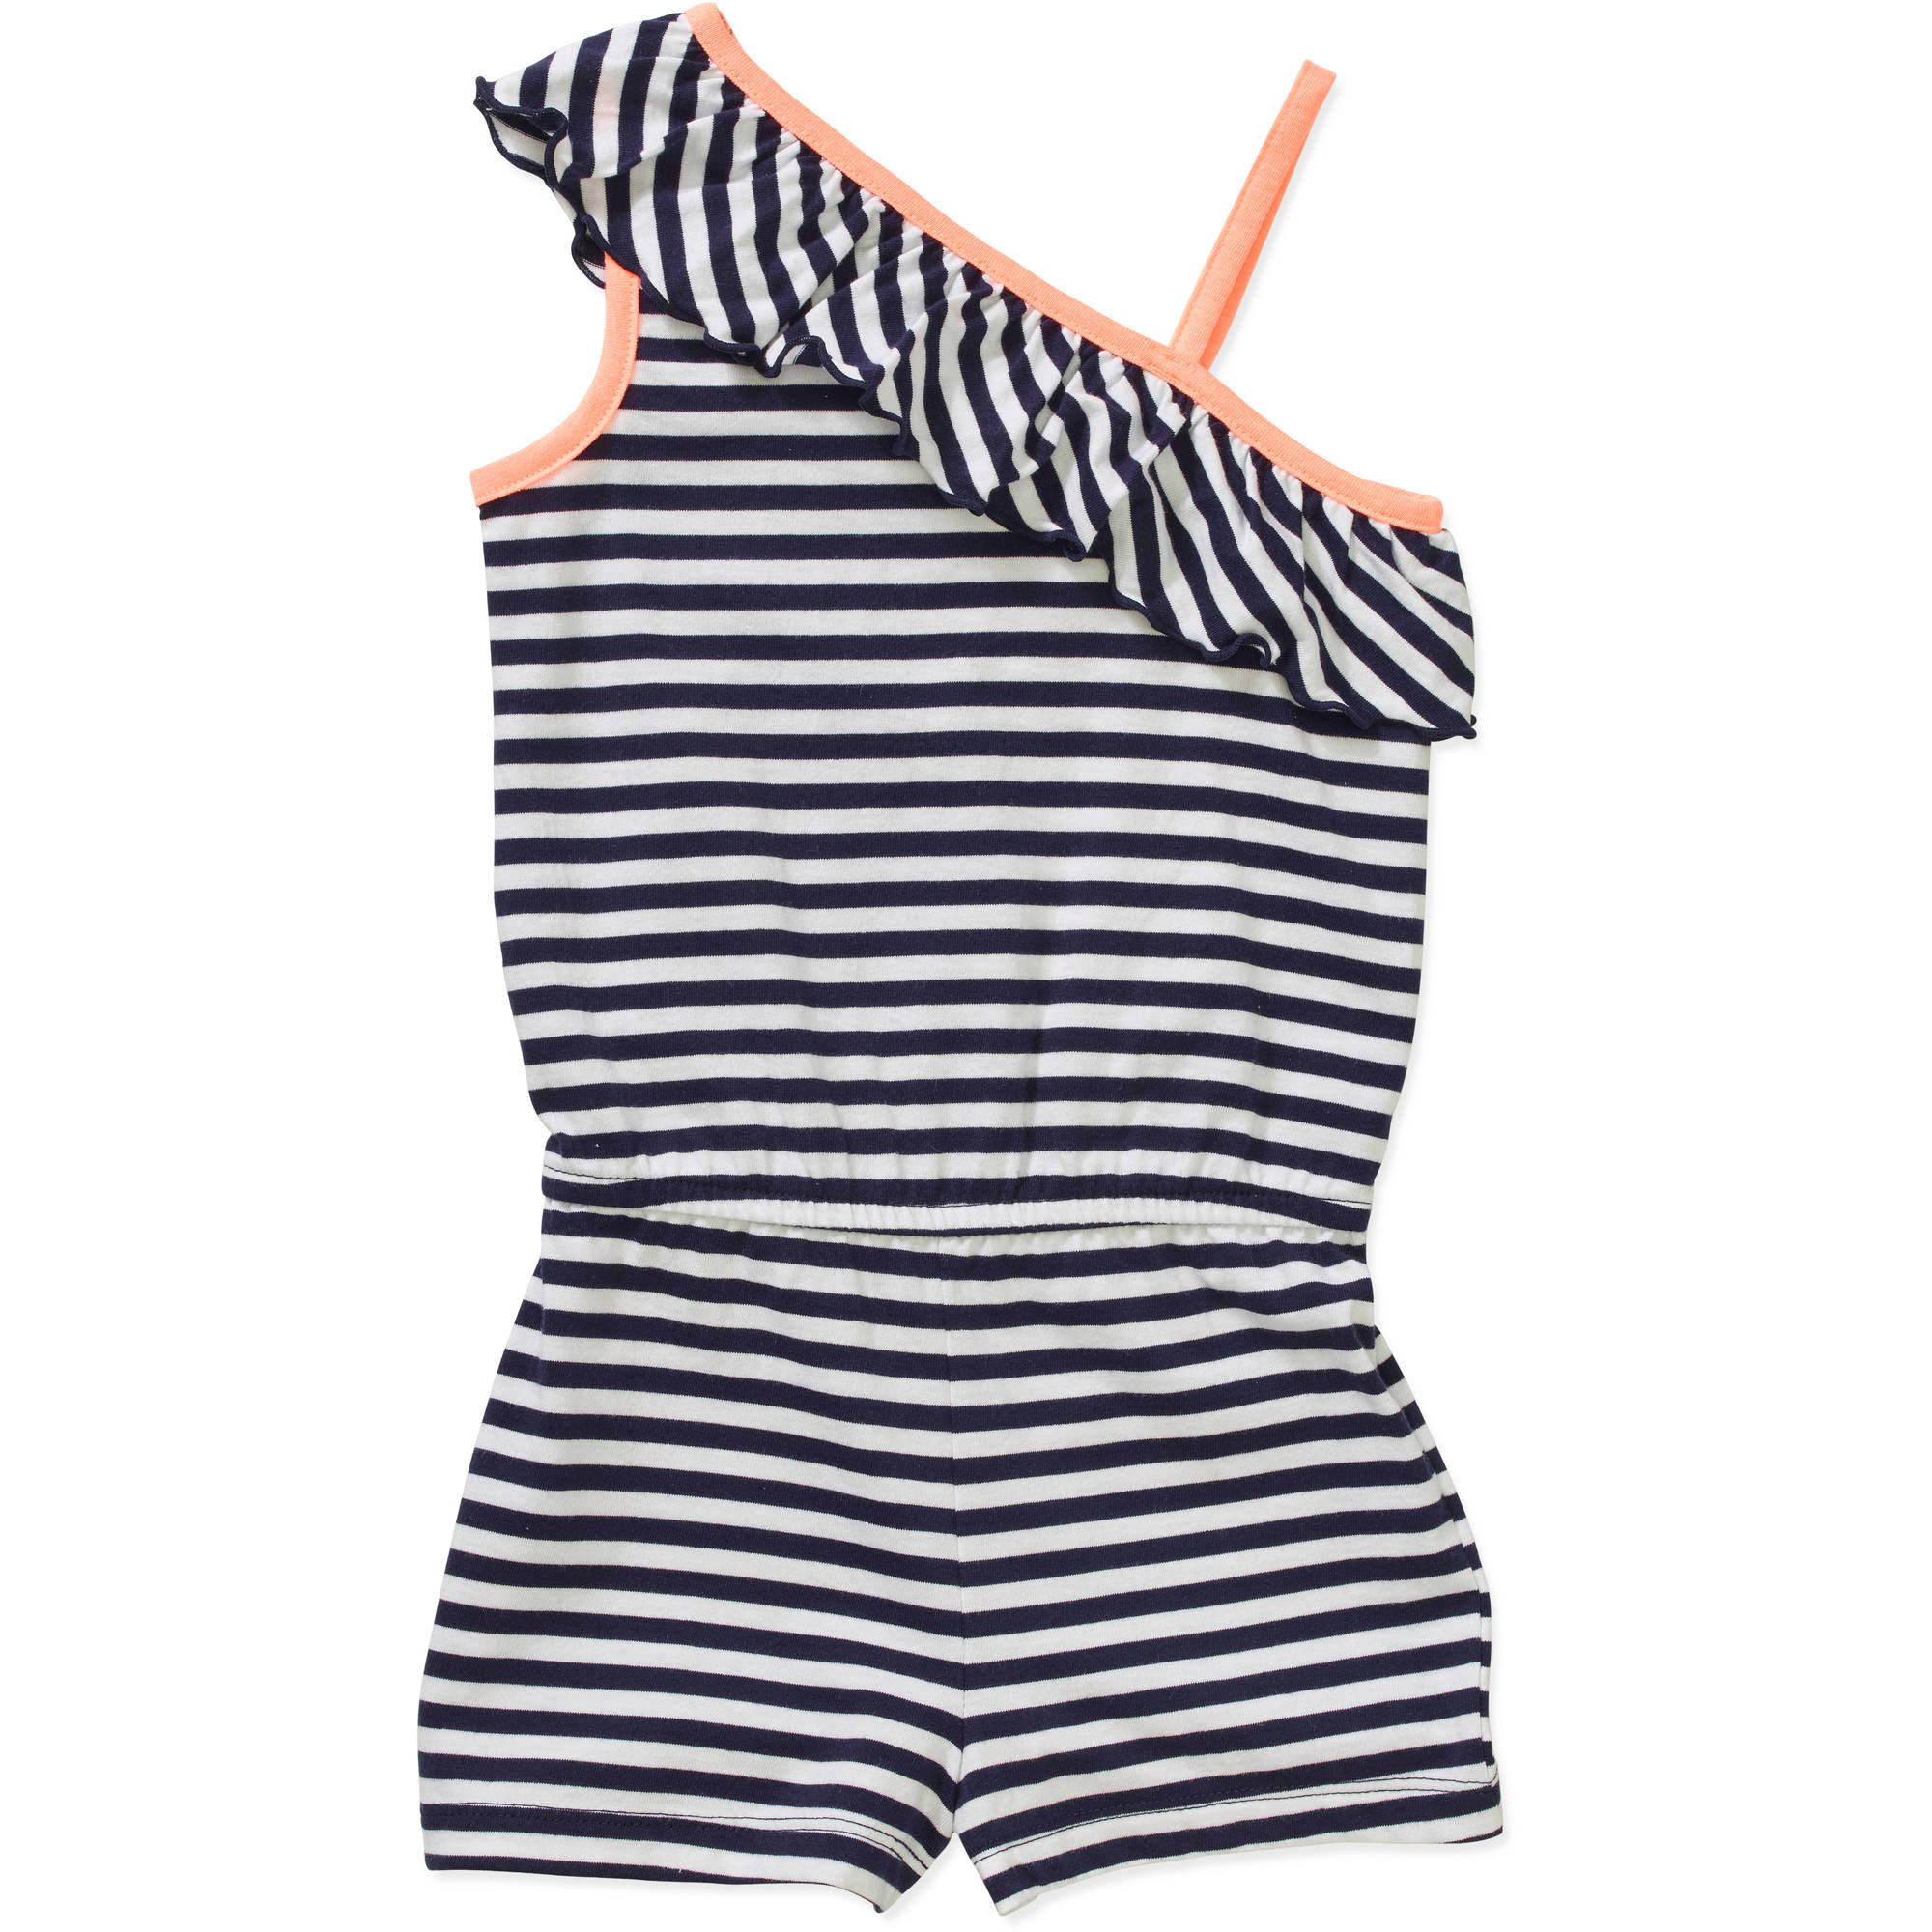 From $4.97 Amazing Value Healthex baby toddler girl spring summer fashion rompers collection